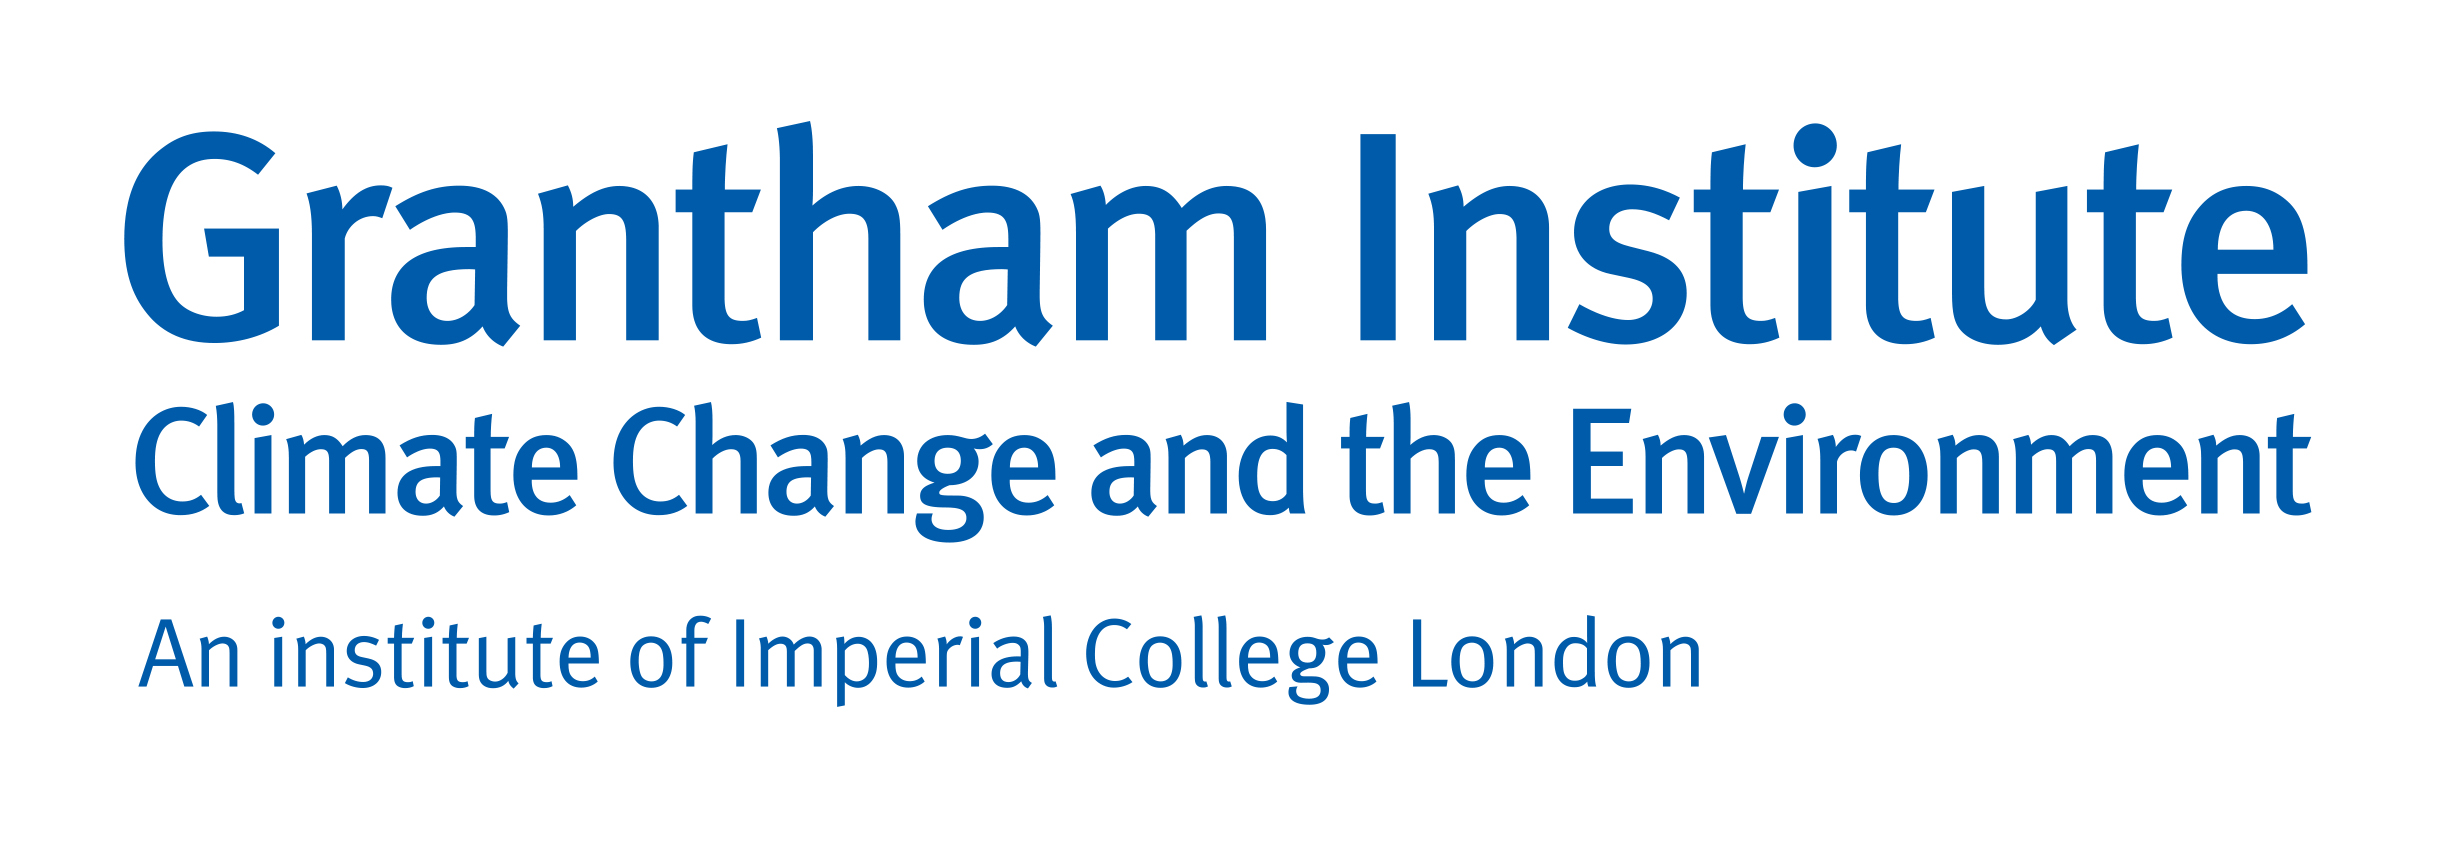 Grantham Institute logo